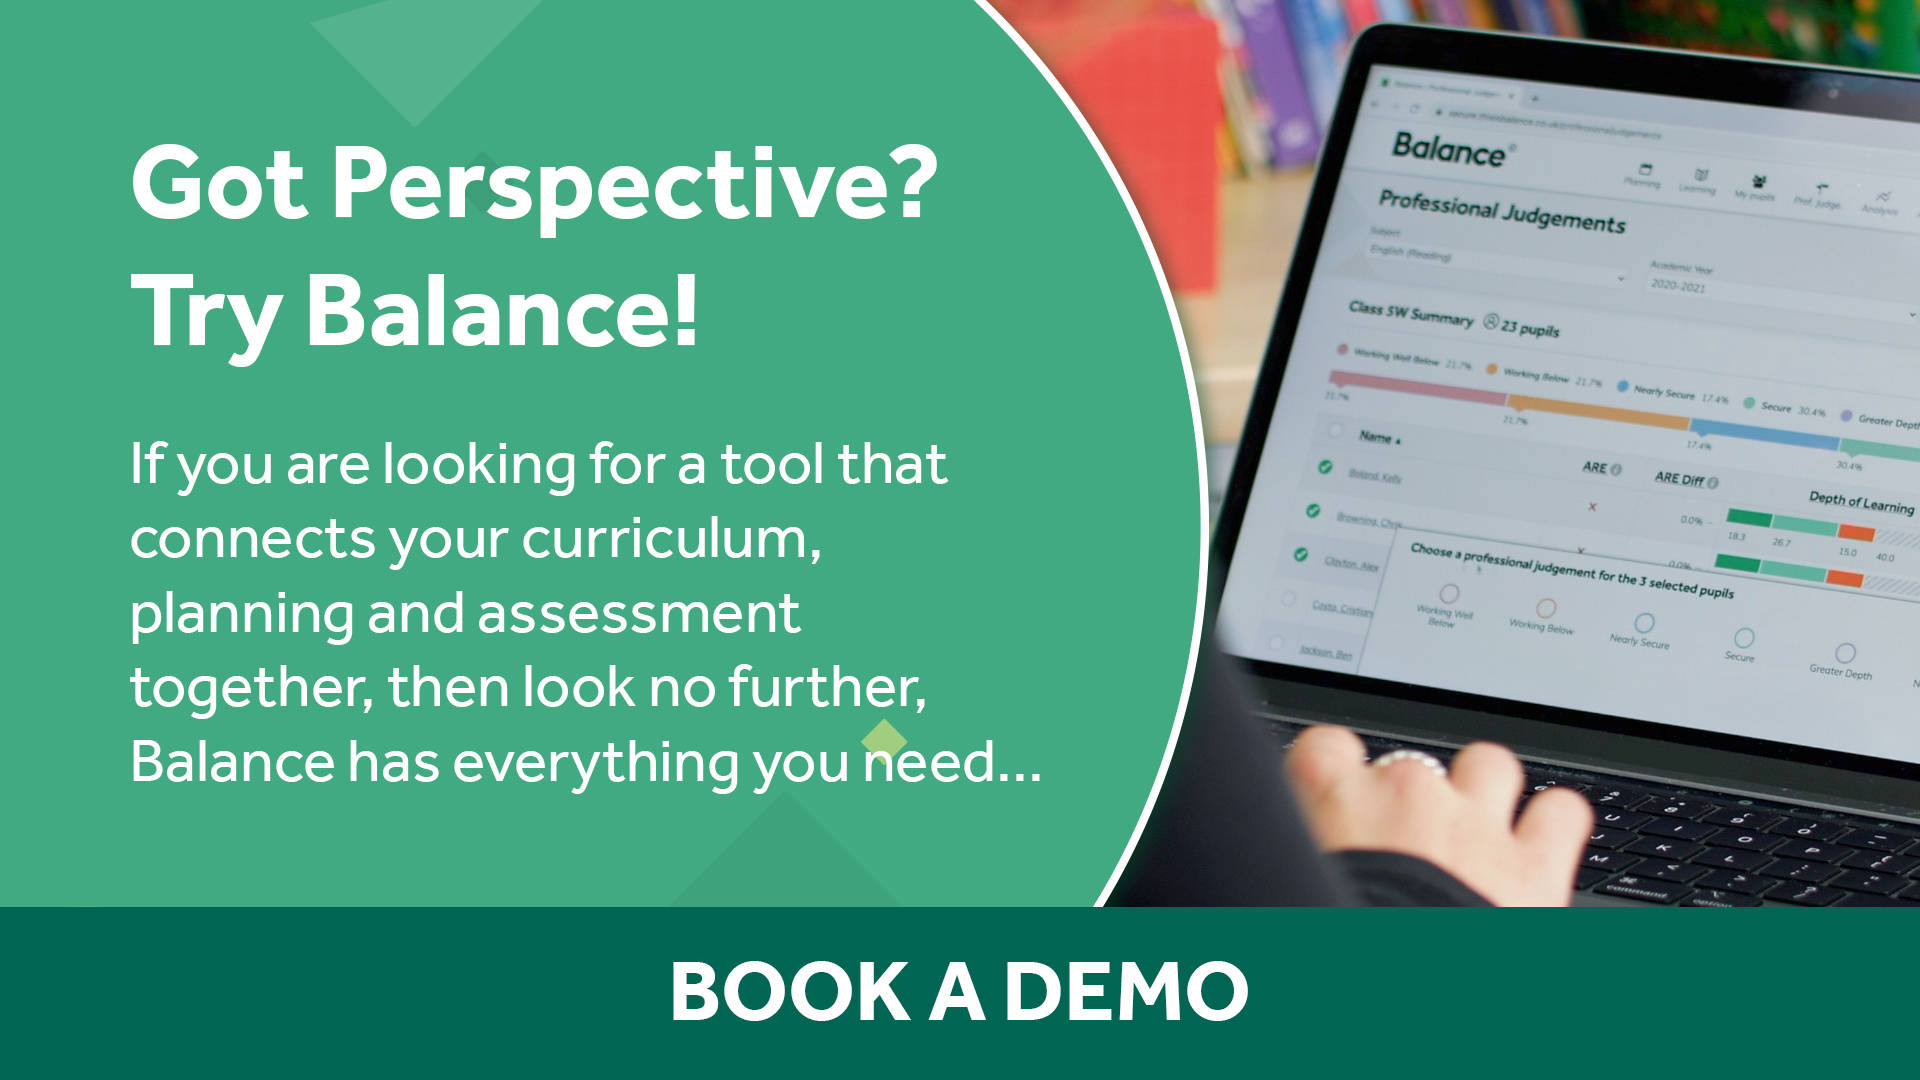 Book a demo for Balance, our planning and assessment tool